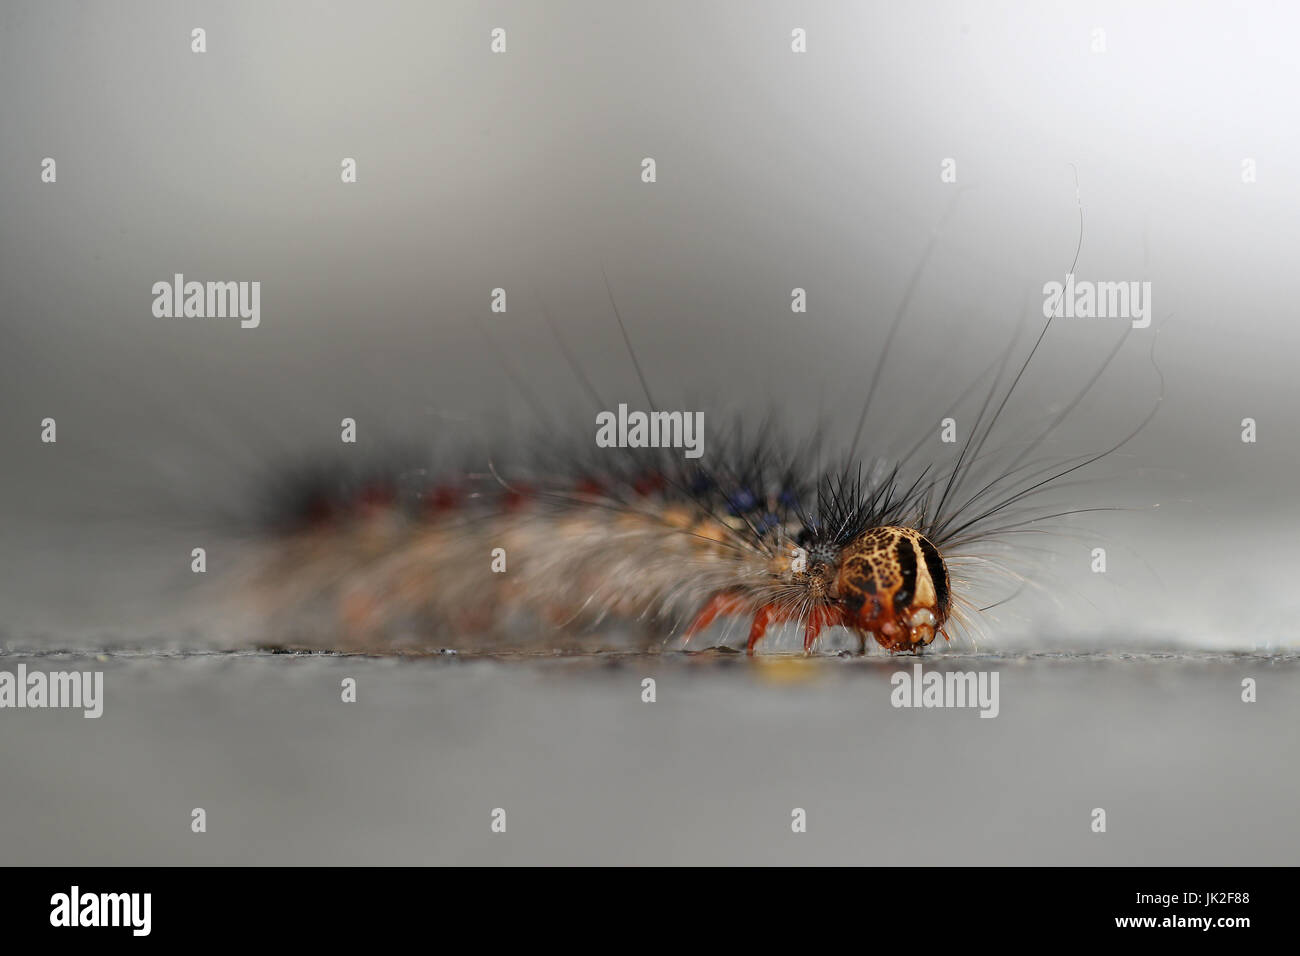 Gypsy moth, Lymantria Dispar, in its caterpillar state: one of the most destructive pests of hardwood trees - Stock Image